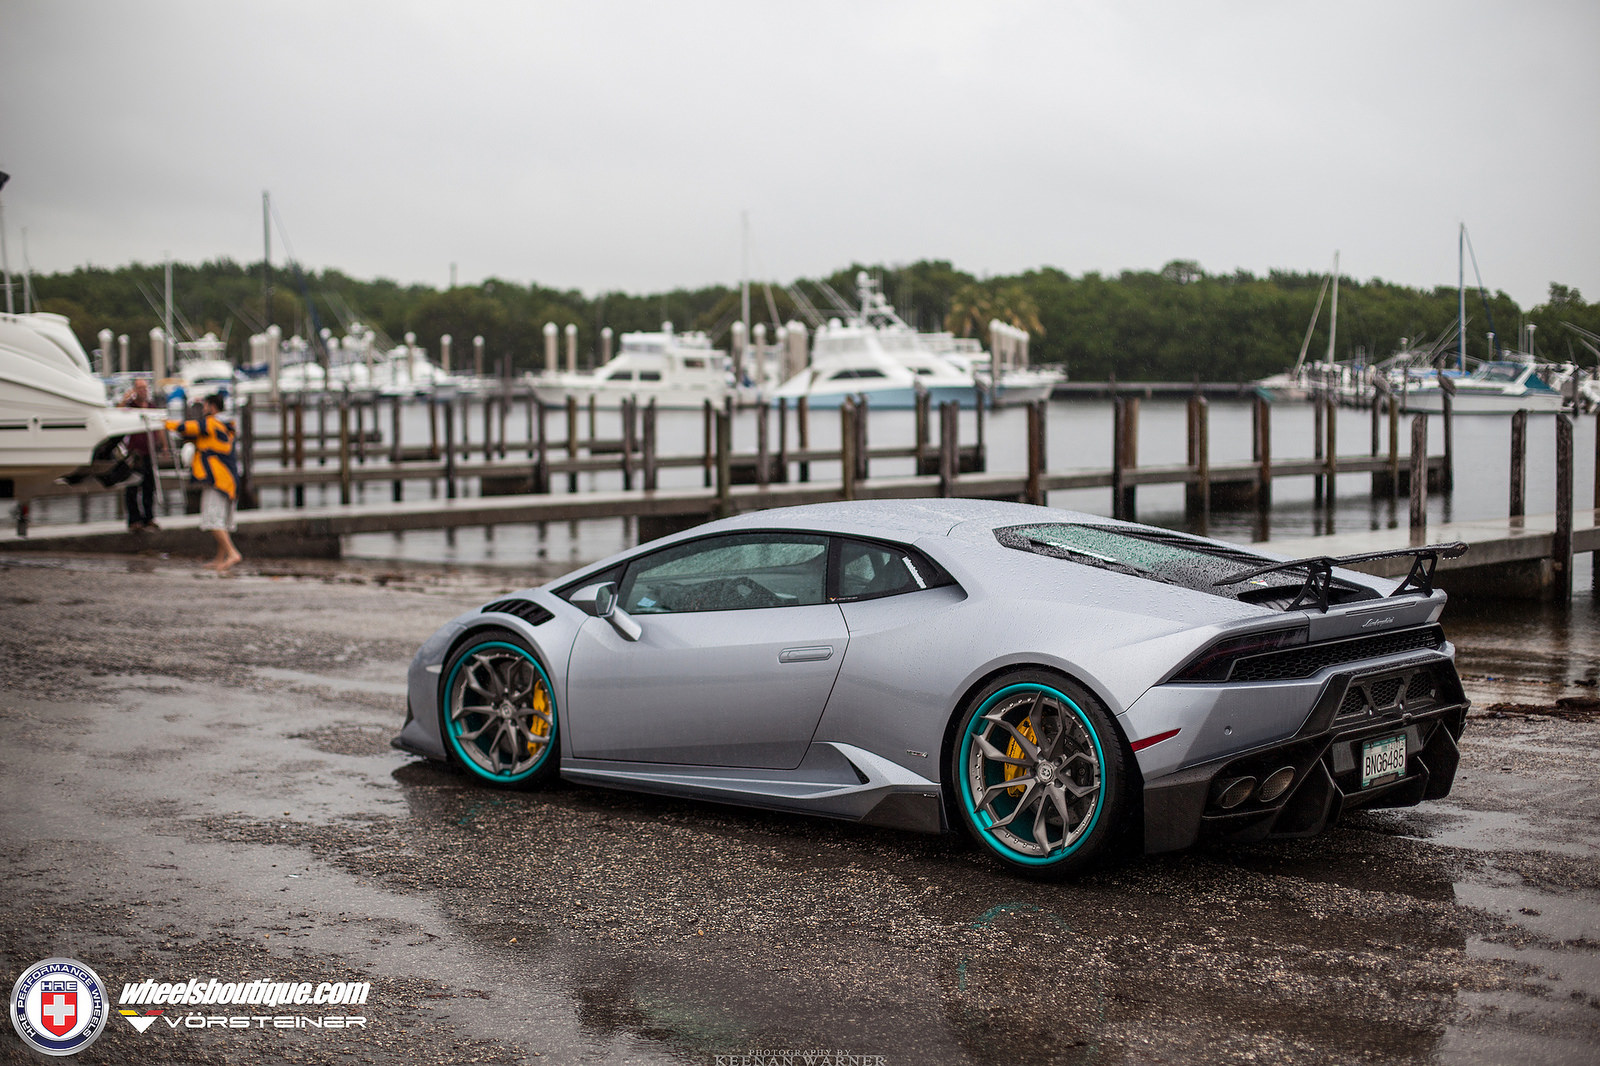 porsche 911 liberty walk with Wheels Boutique Vorsteiner Novara Lamborghini Huracan on 110283 furthermore Watch likewise Virtual Tuning Porsche 991 Gt3 Wide Body further 11488 Calandre Diamant Amg Pour Mercedes Classe C W205 as well 7482 Dodge Viper Gen 3   4 Wide Body Conversion  ing Soon.